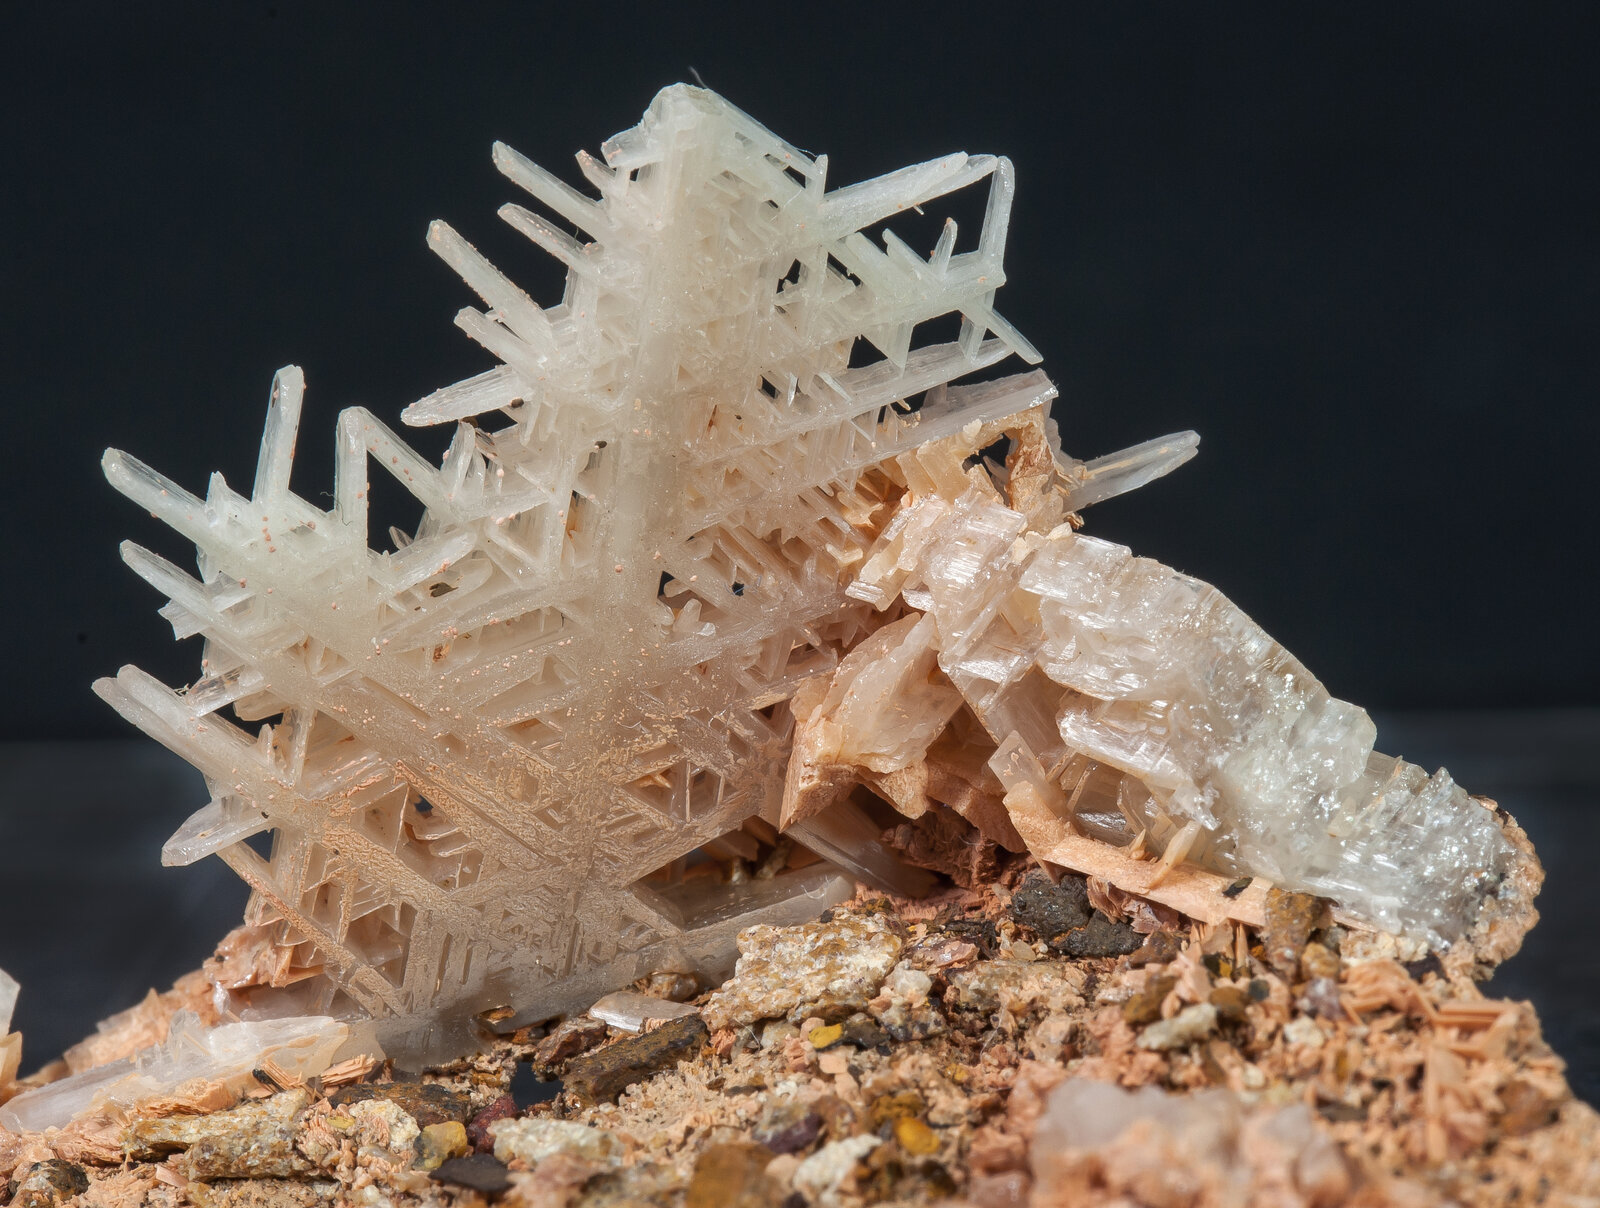 specimens/s_imagesAN0/Cerussite-NB87AN0d.jpg